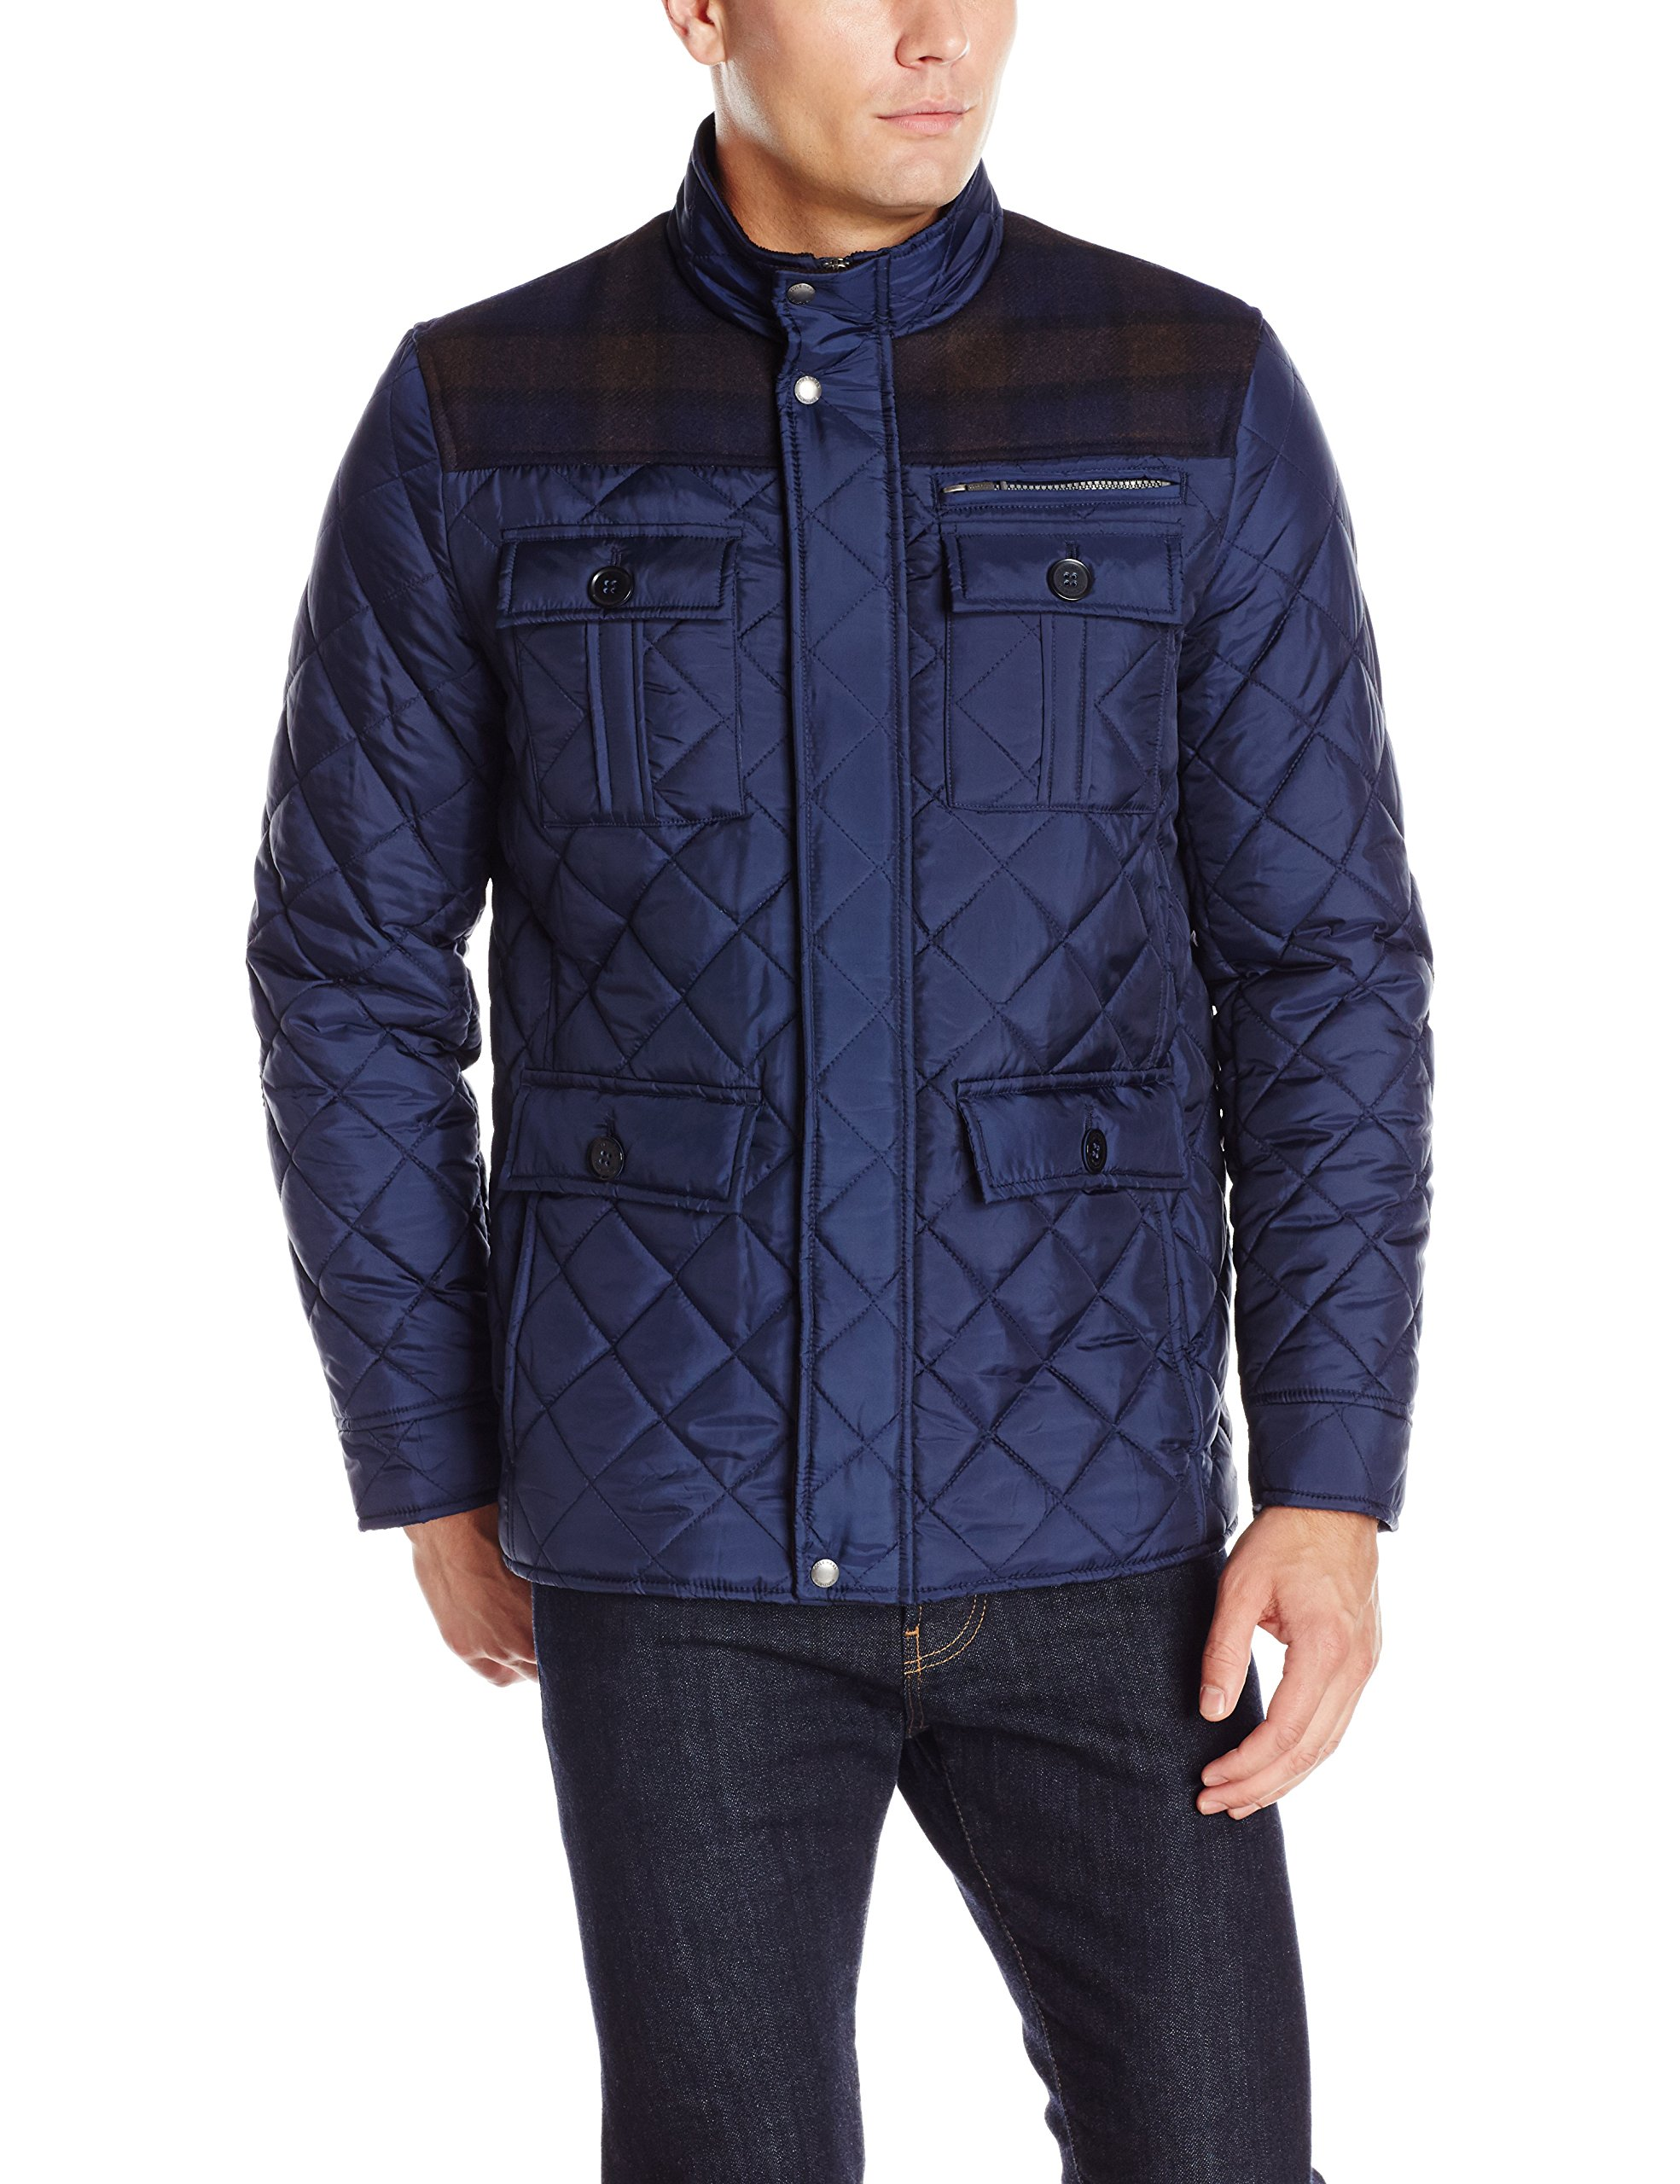 Cole Haan Signature Men's Plaid Wool Mixed Media Multi Pocket Jacket, Navy, Large by Cole Haan Signature